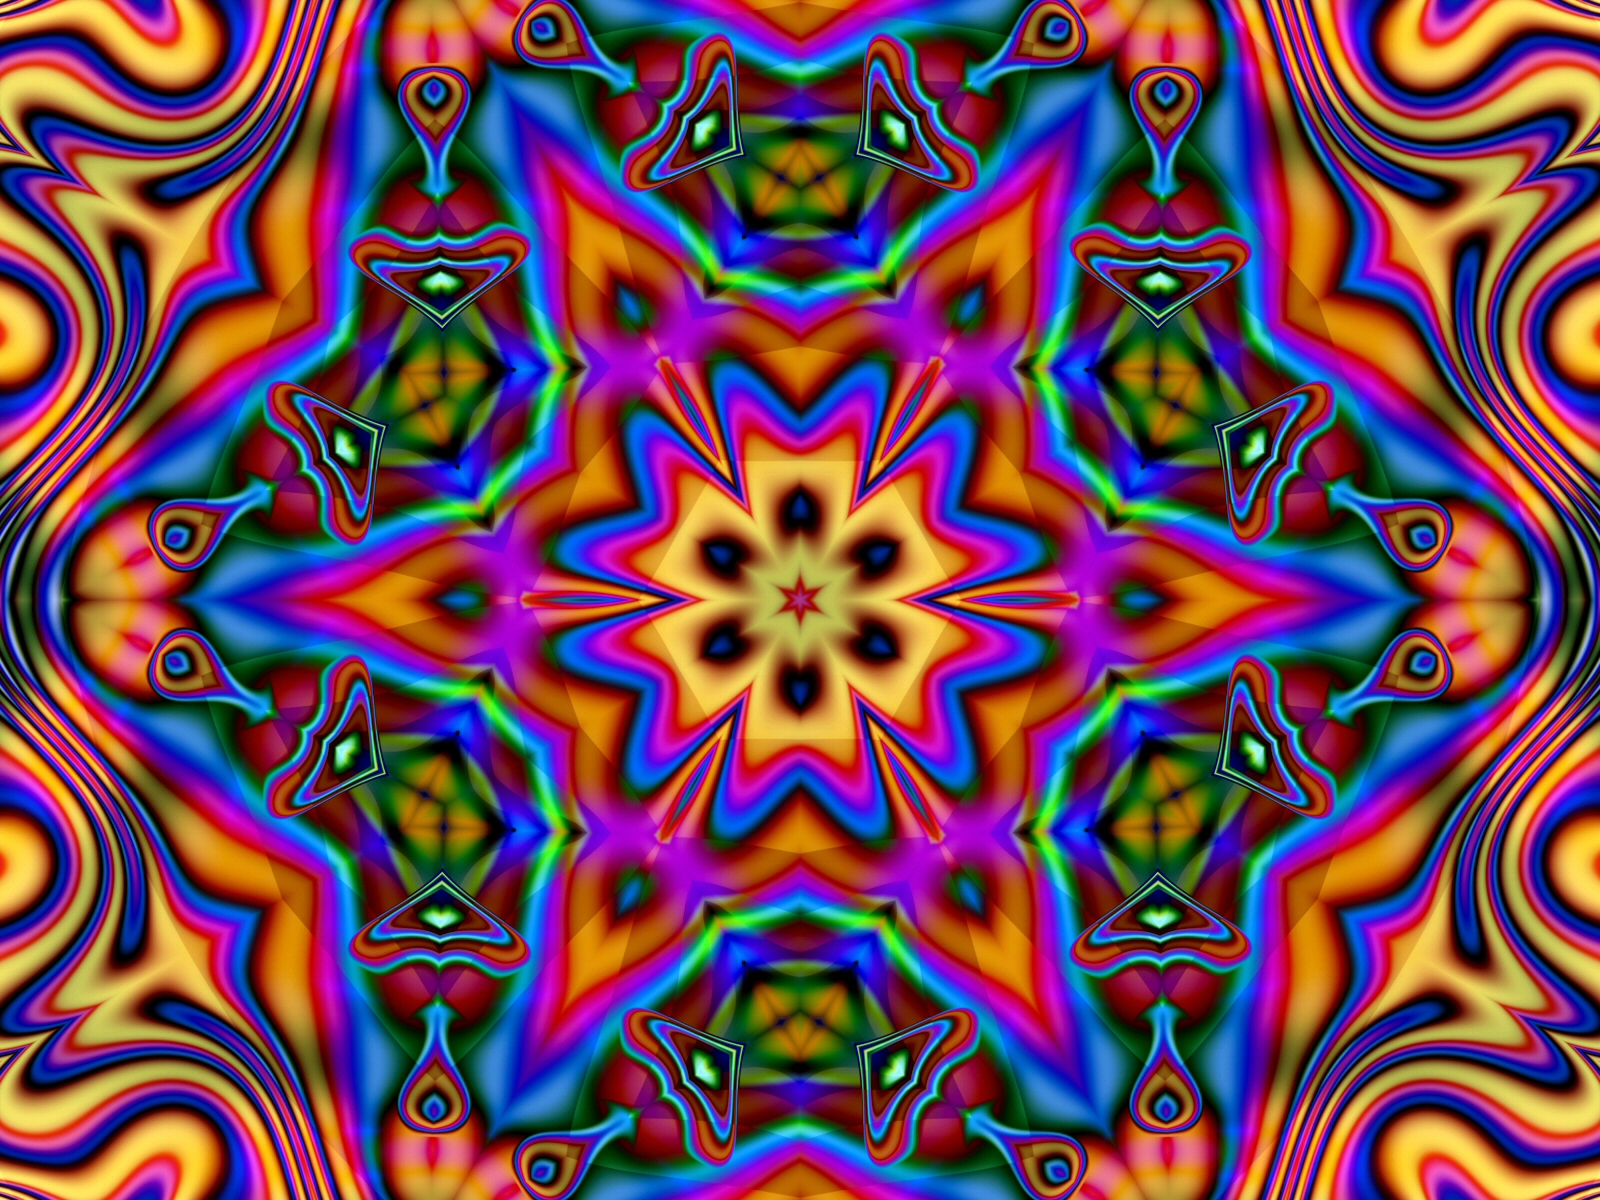 Hippie psychedelic wallpaper HD wallpaper background 1600x1200